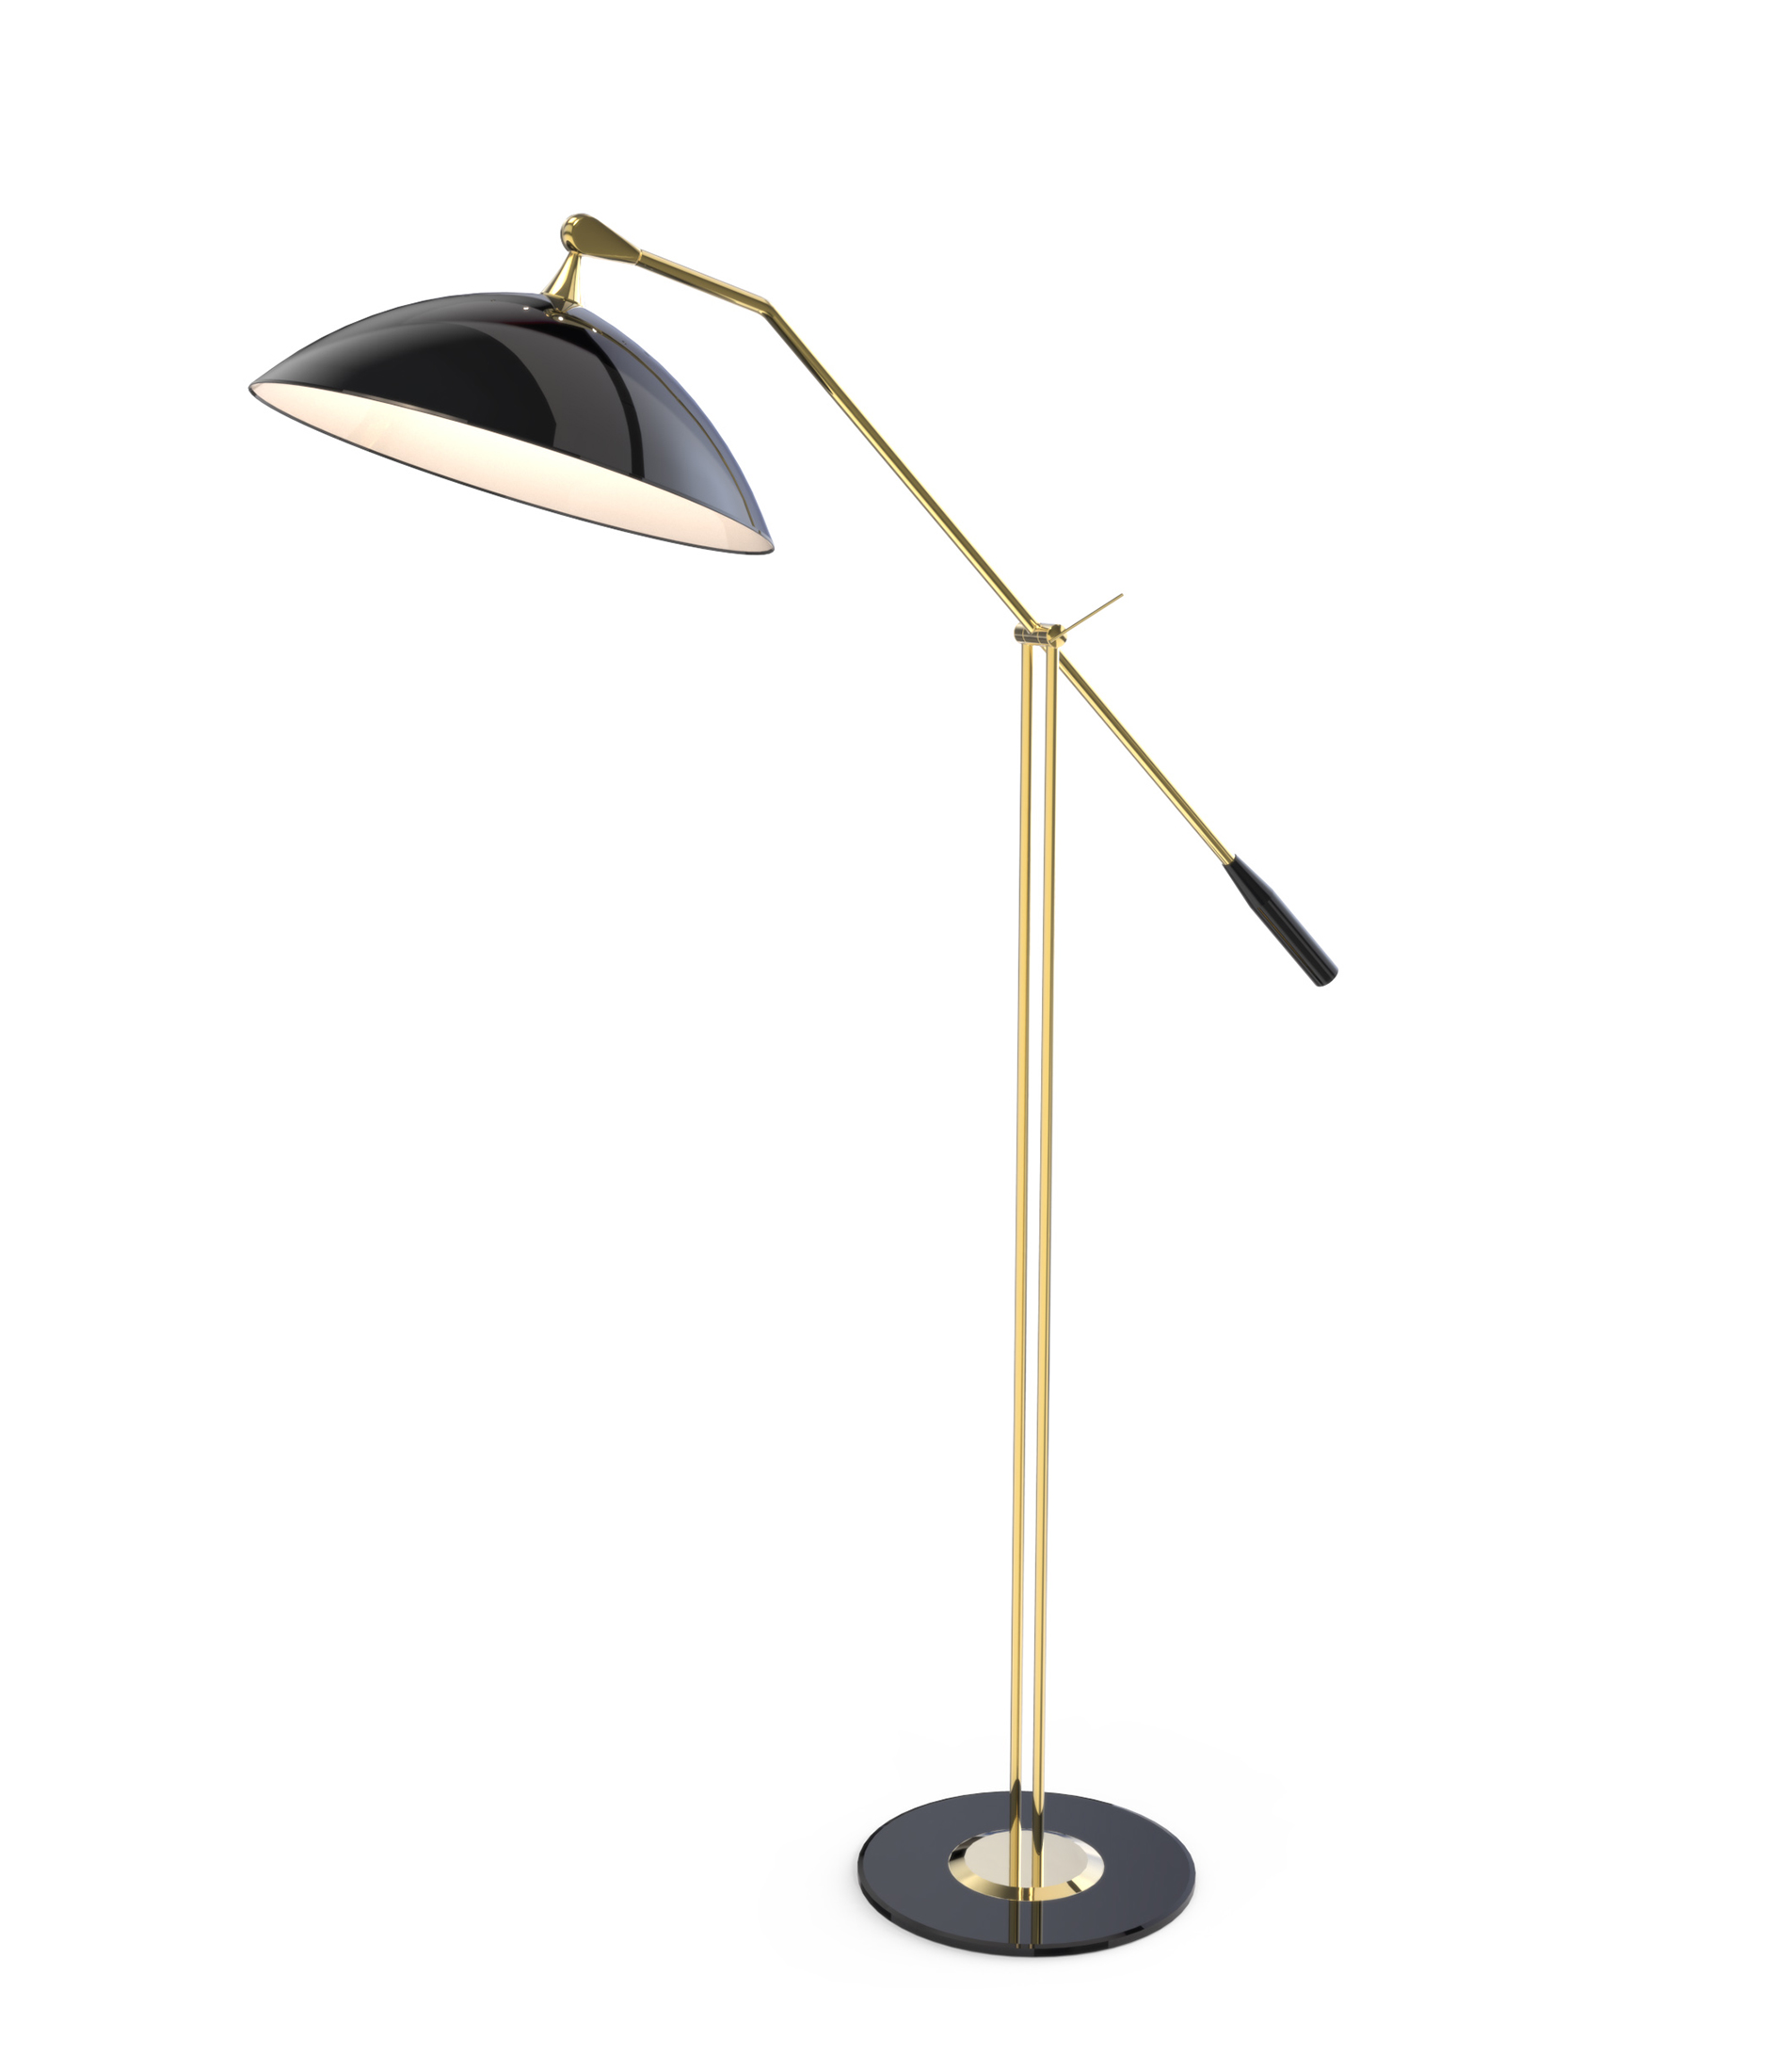 modern floor lamps modern floor lamps Floor Samples Has Brand-New Modern Floor Lamps! Floor Samples Has Brand New Modern Floor Lamps 6